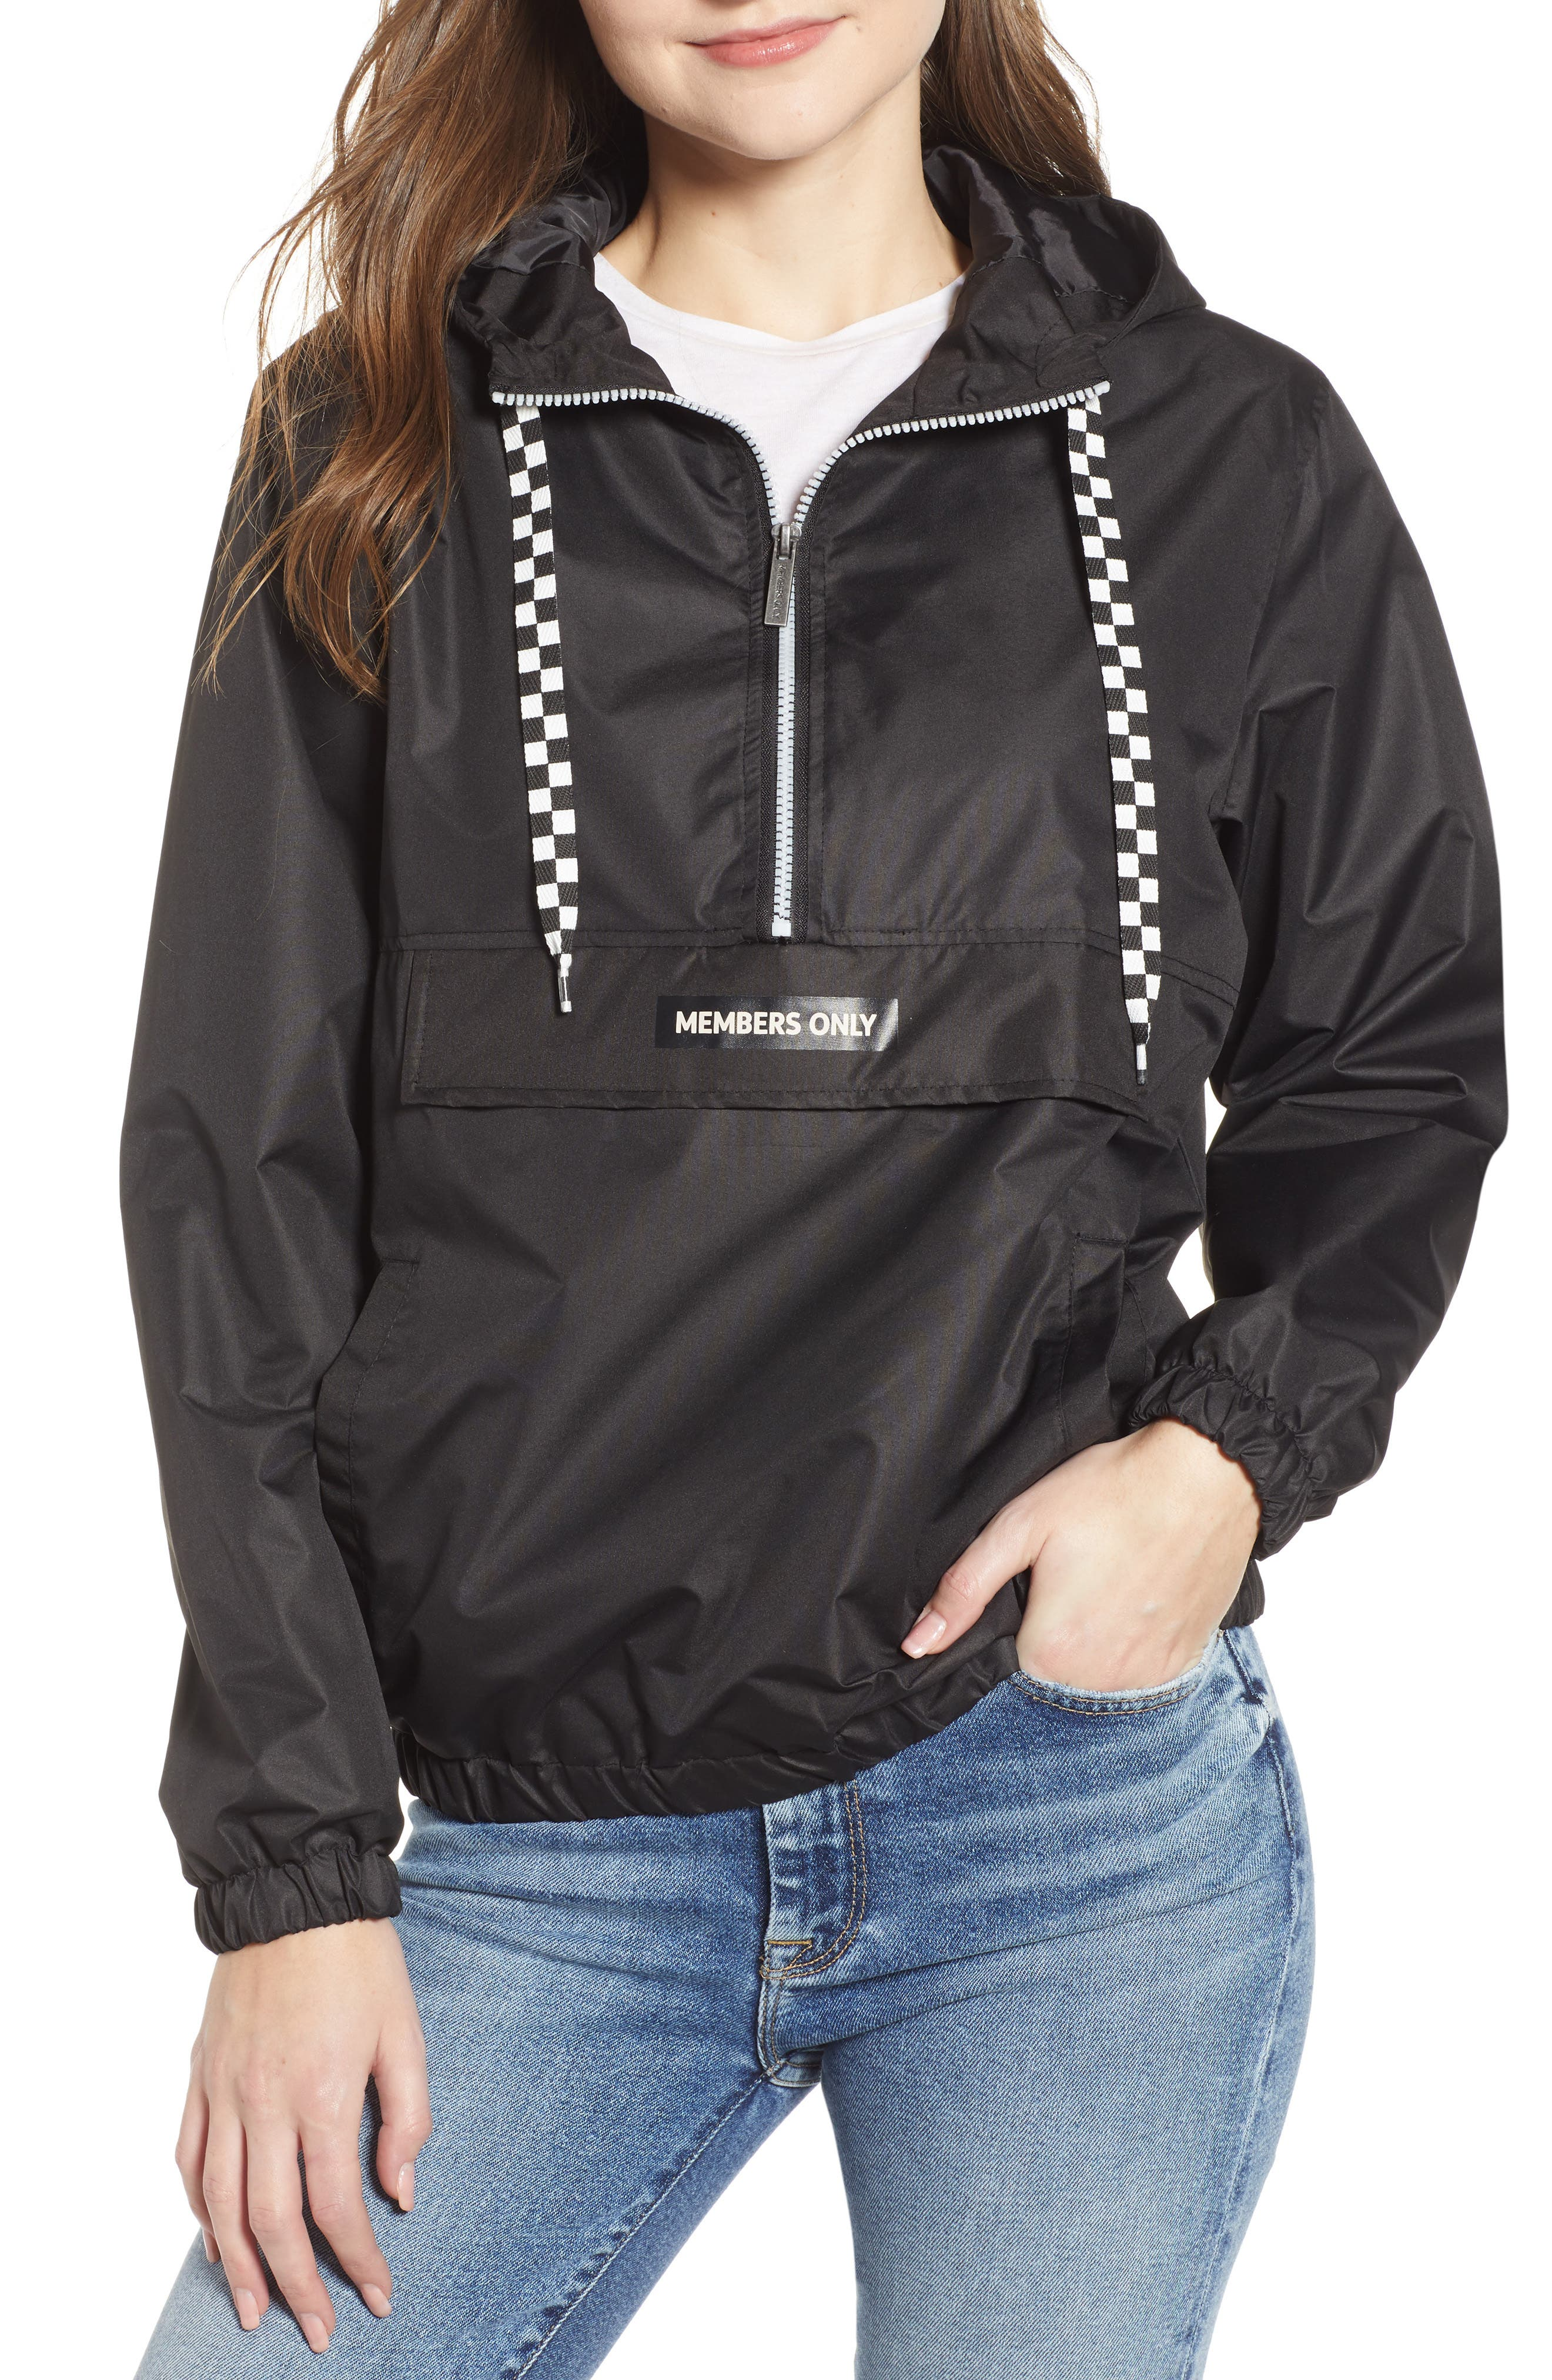 MEMBERS ONLY,                             Hooded Anorak,                             Main thumbnail 1, color,                             BLACK